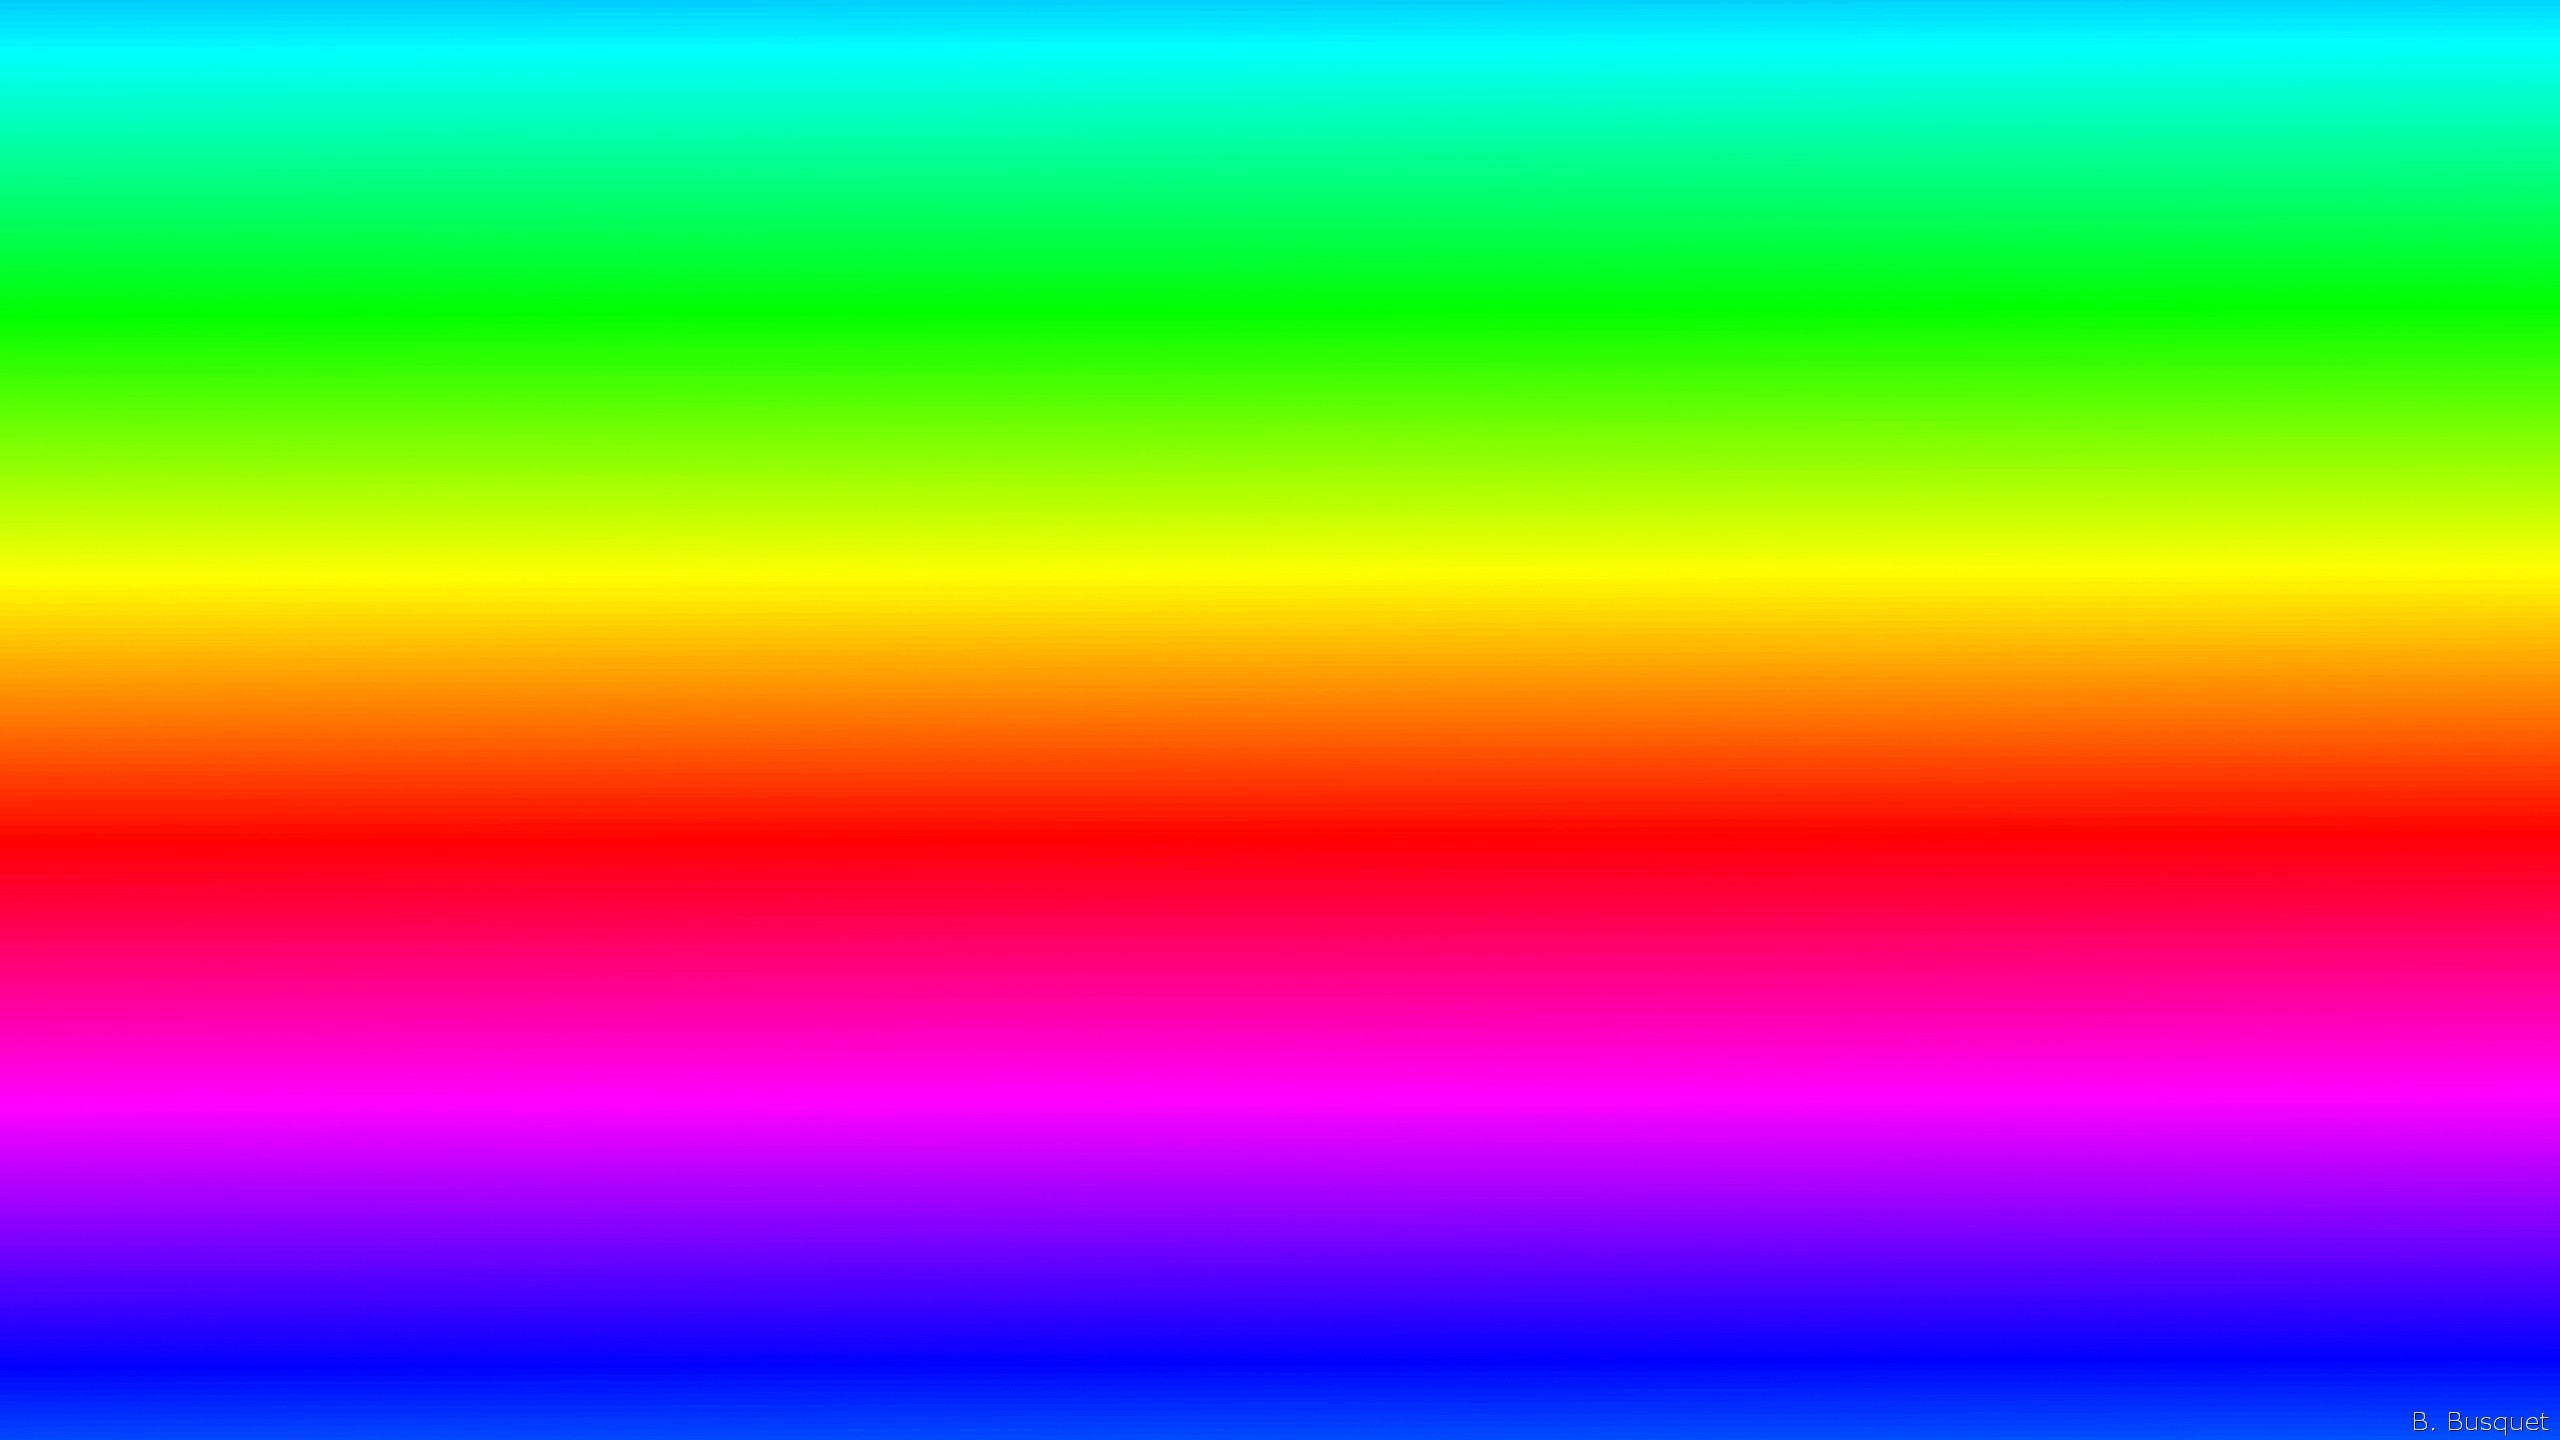 HD wallpaper with all colors of the rainbow 1